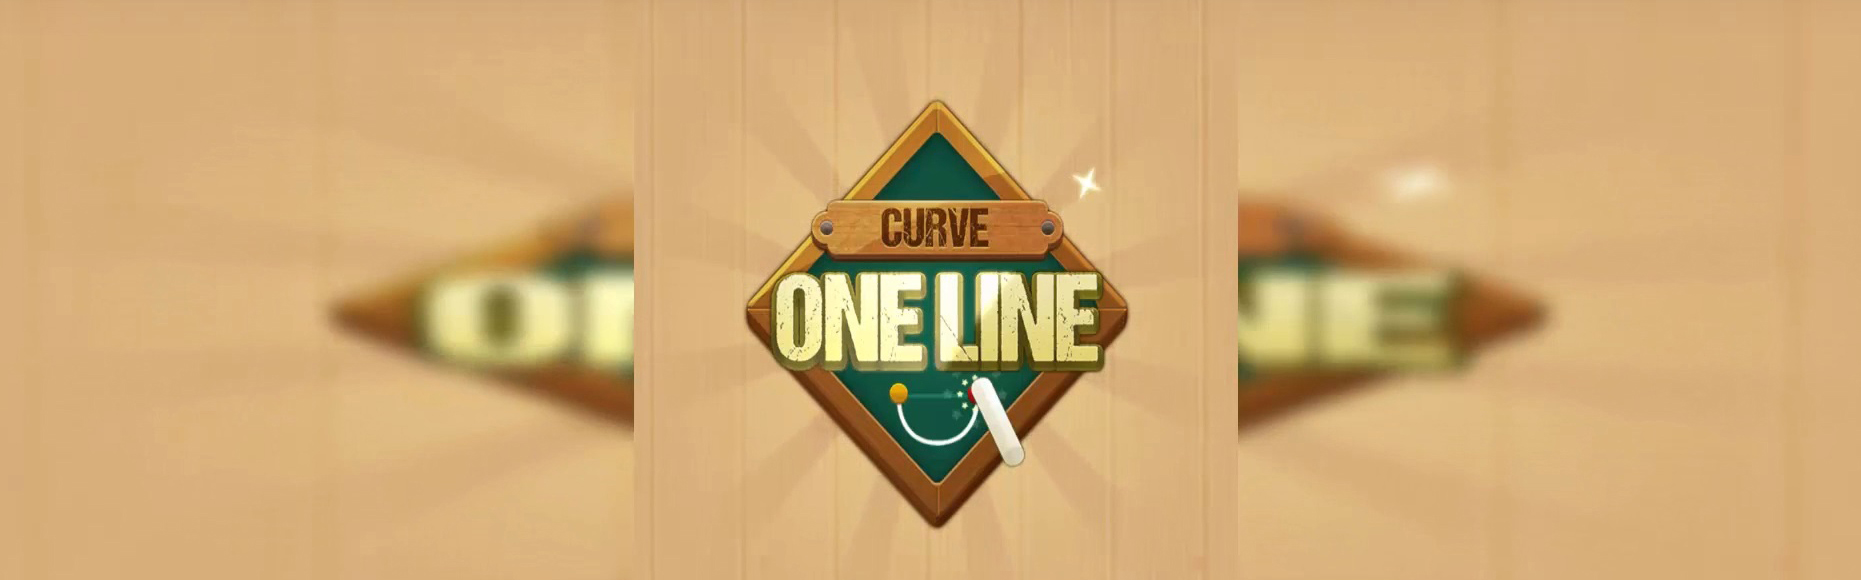 One Line Curve Drawing